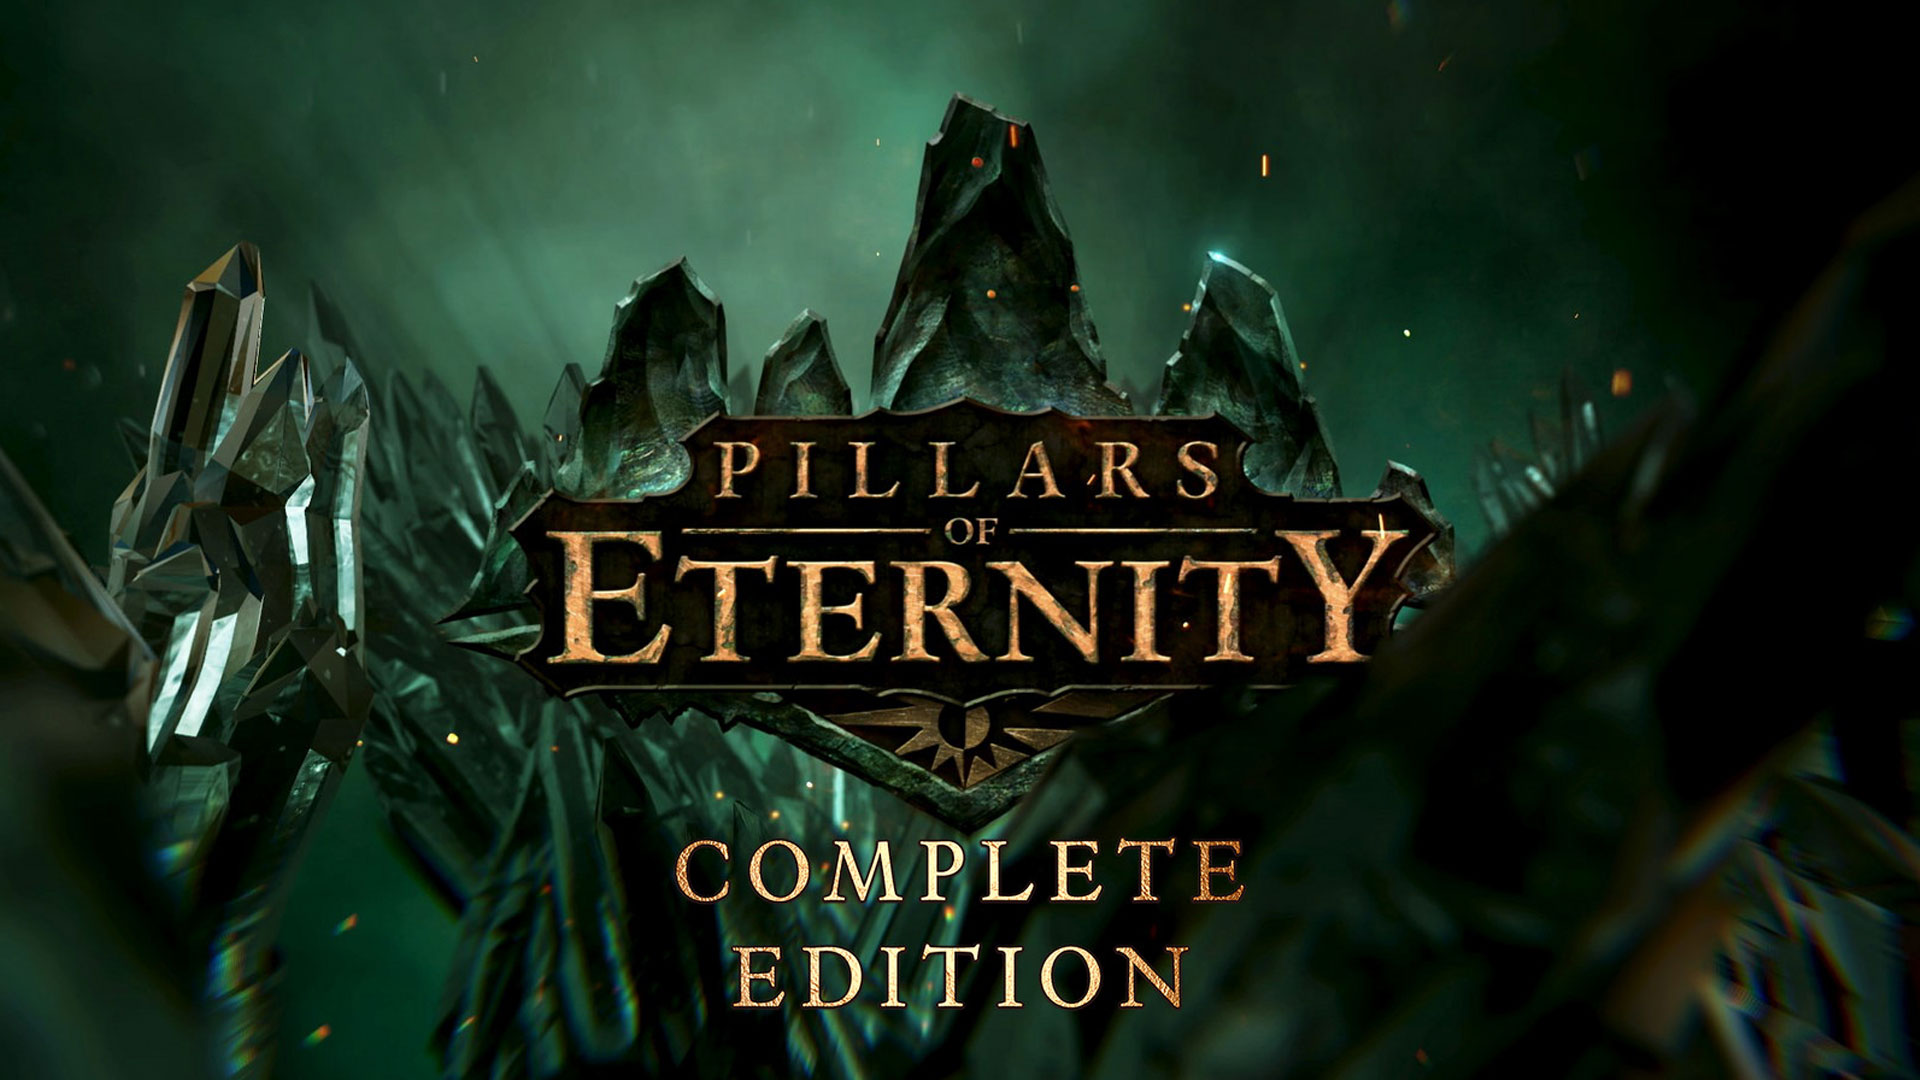 Pillars Of Eternity: Complete Edition Is Coming To Nintendo Switch